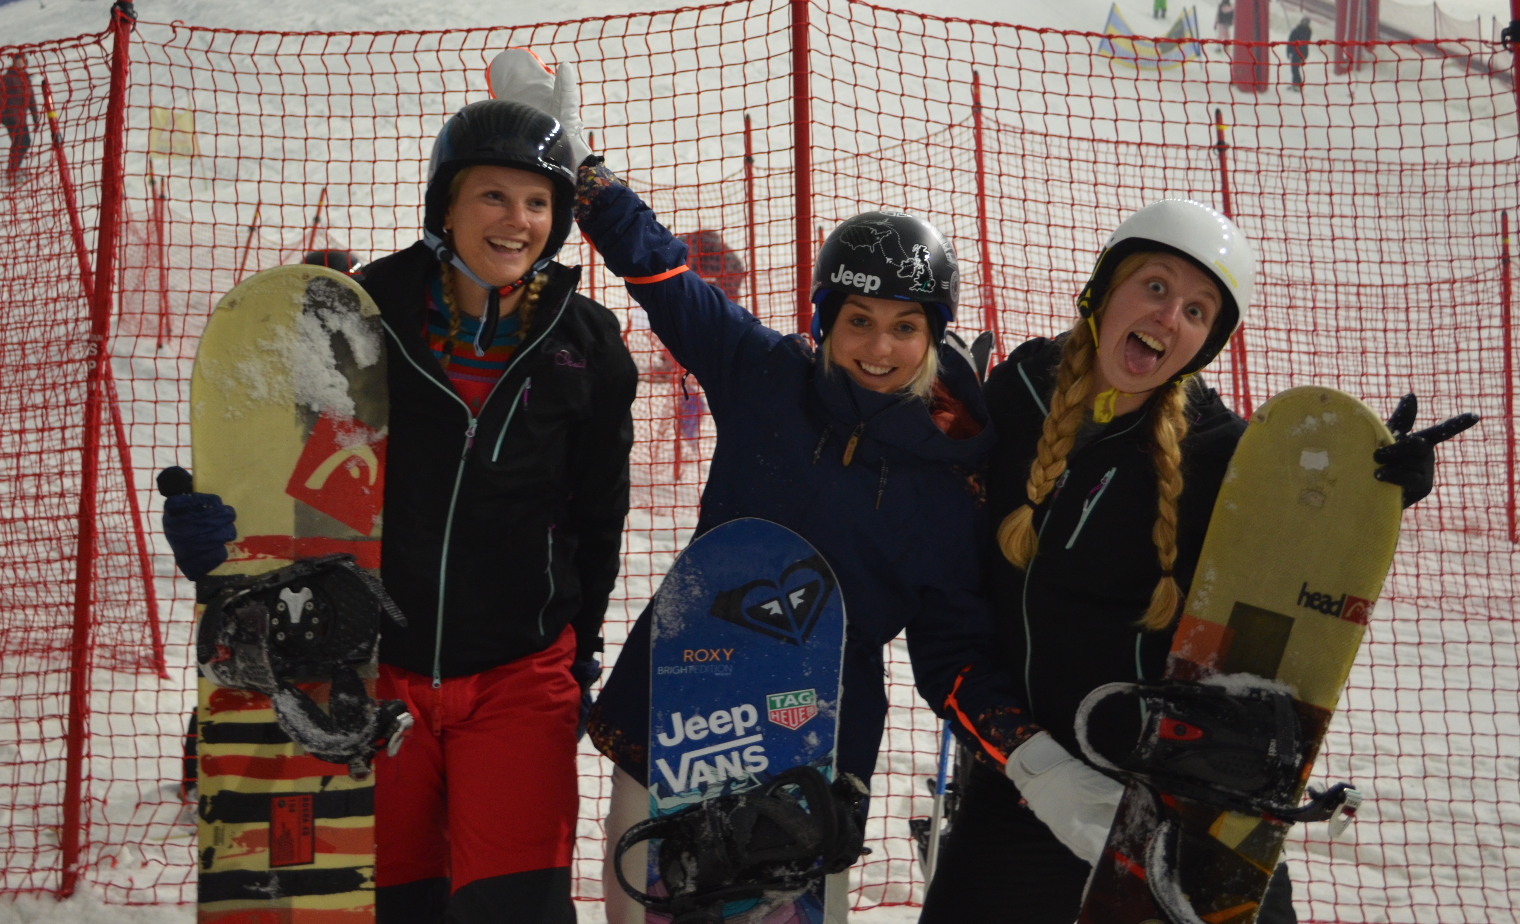 Fun with the Winners, of the Jeep UK Tough Mudder prize give away at The Snow Centre. Z and Ellie! Awesome to meet you guys. Fun, young and inspirational sporty women. Best of luck with your rowing and sailing campaigns!